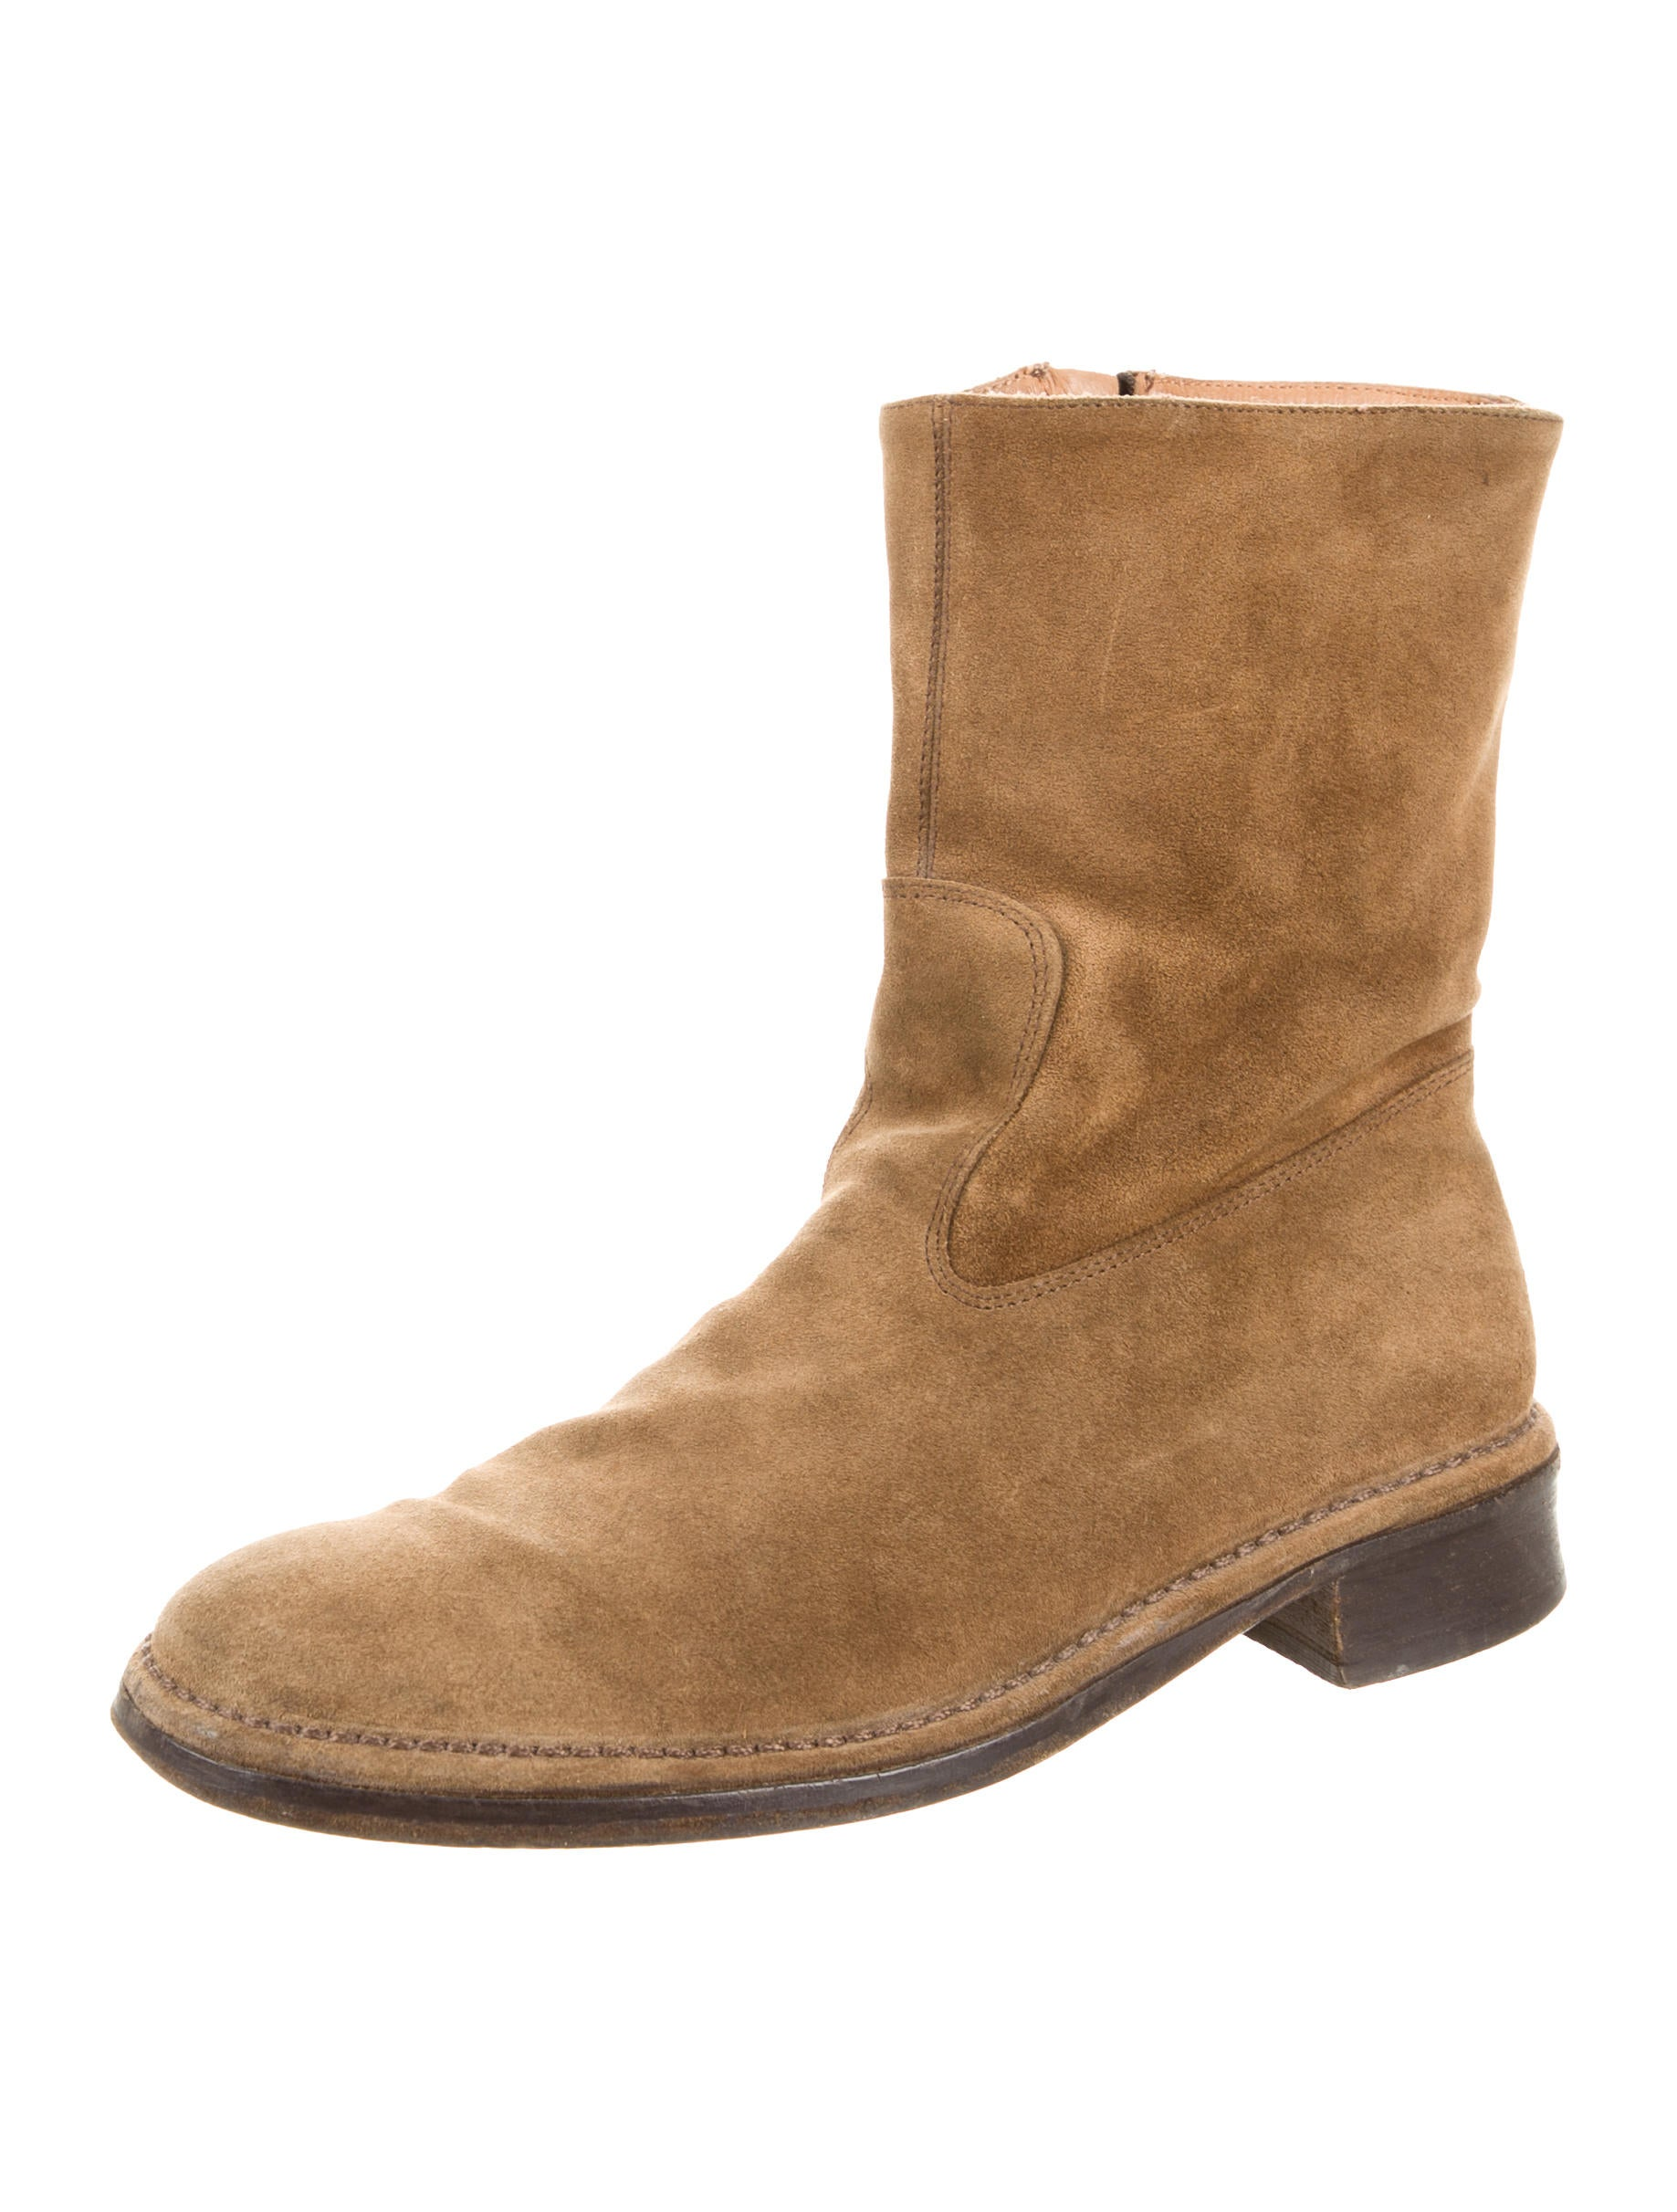 varvatos suede ankle boots shoes jva22390 the